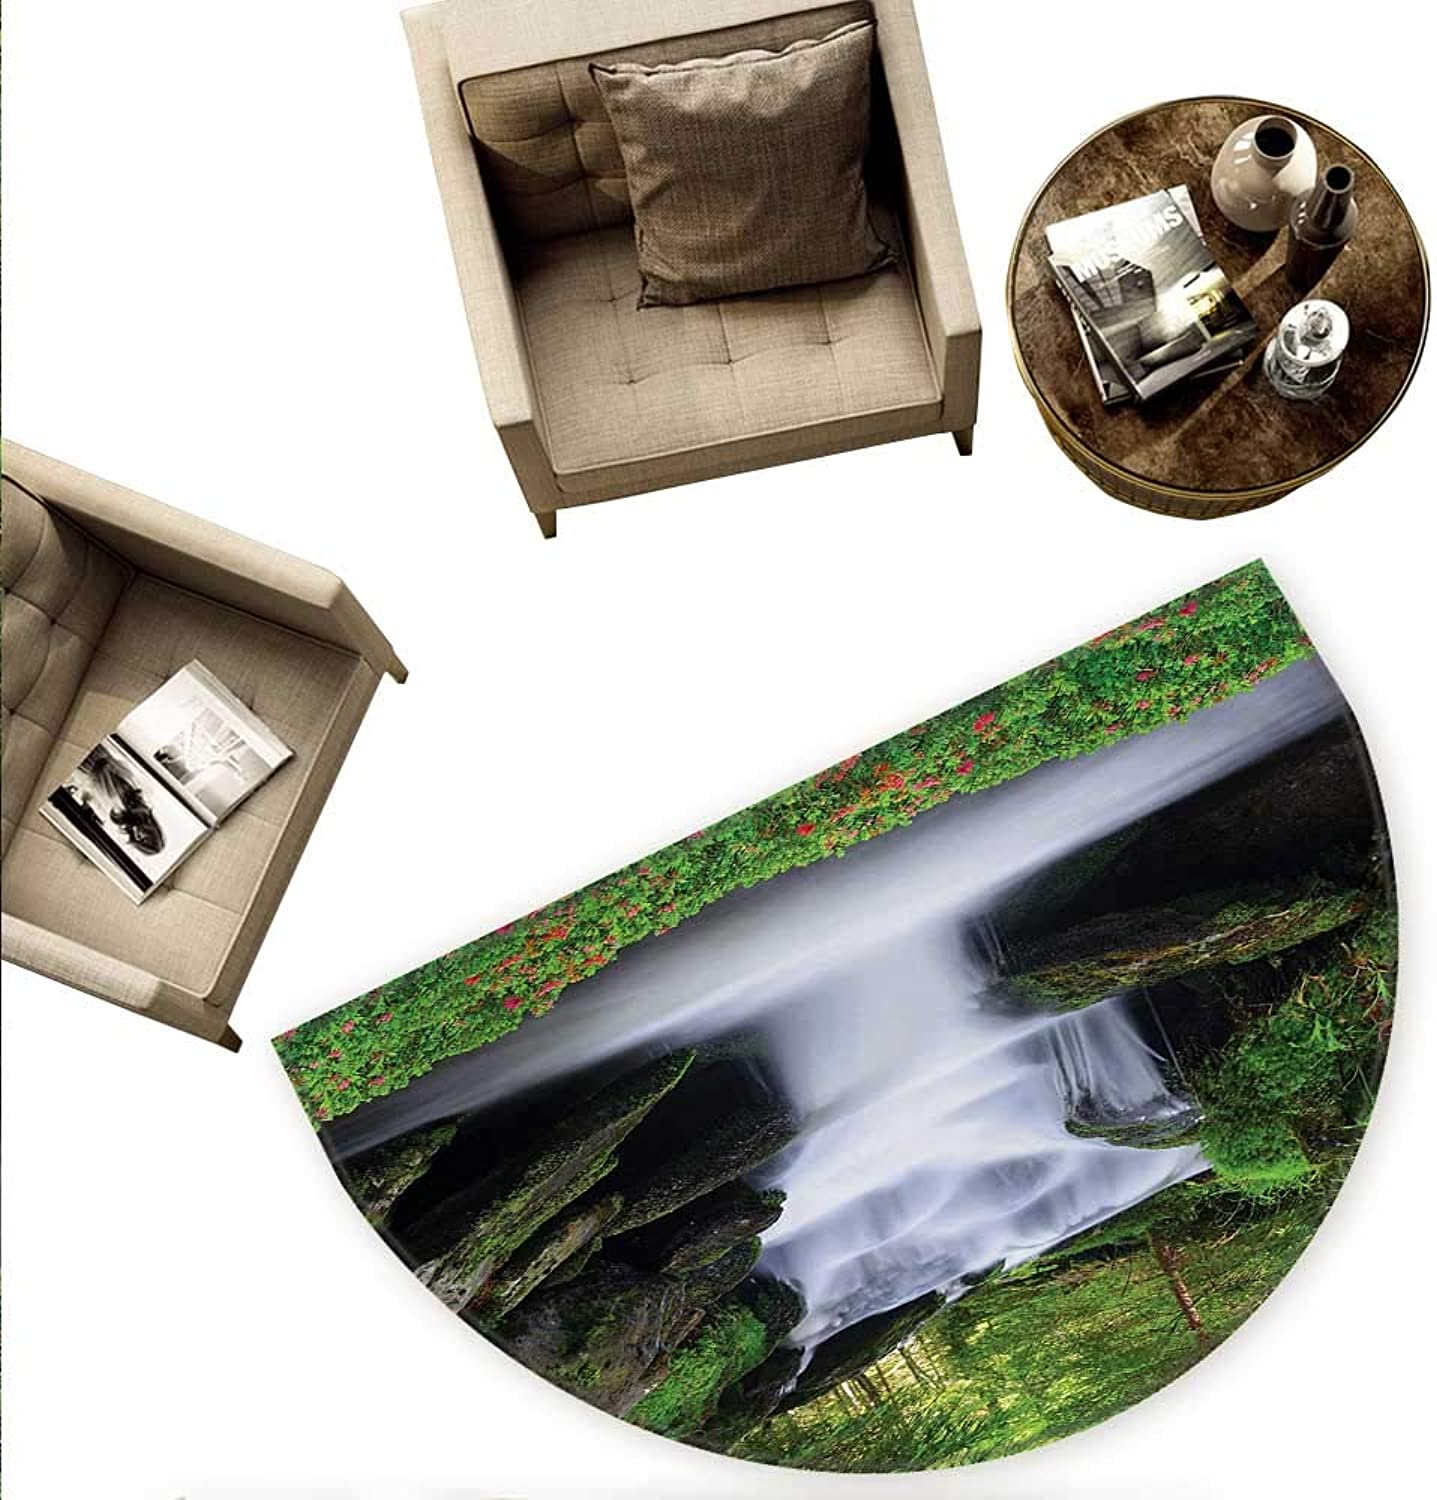 Waterfall Semicircular Cushion Dream Like Image of Waterfall with Trees and Flowers in Forest Mother Nature Entry Door Mat H 78.7  xD 118.1  Green White